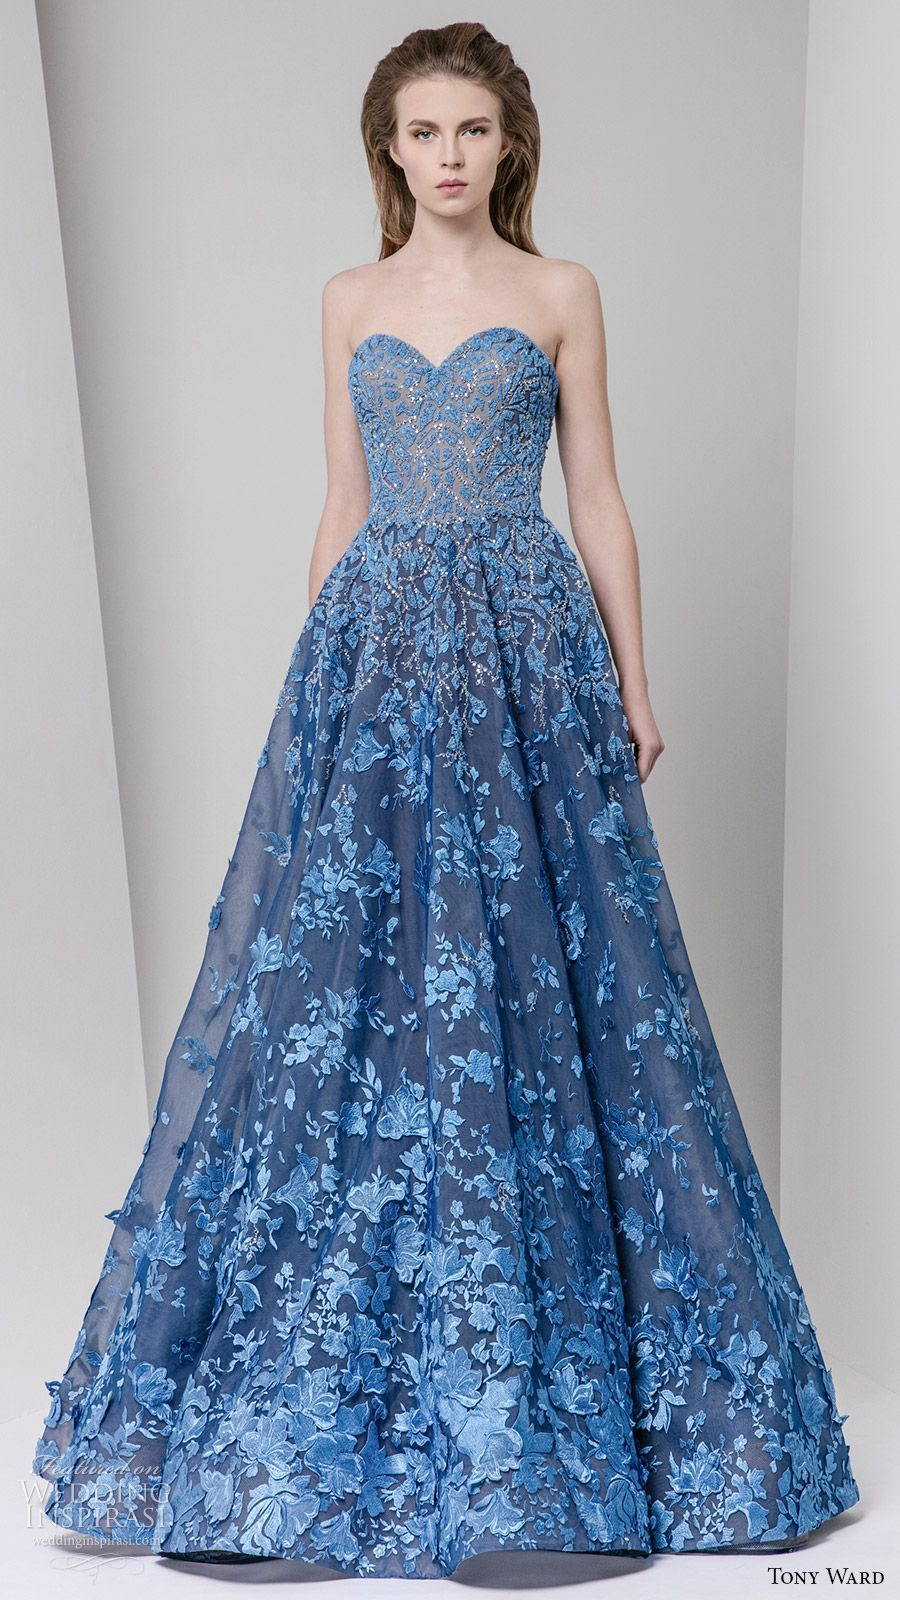 tony ward fall 2016 rtw strapless sweetheart a line gown blue ...